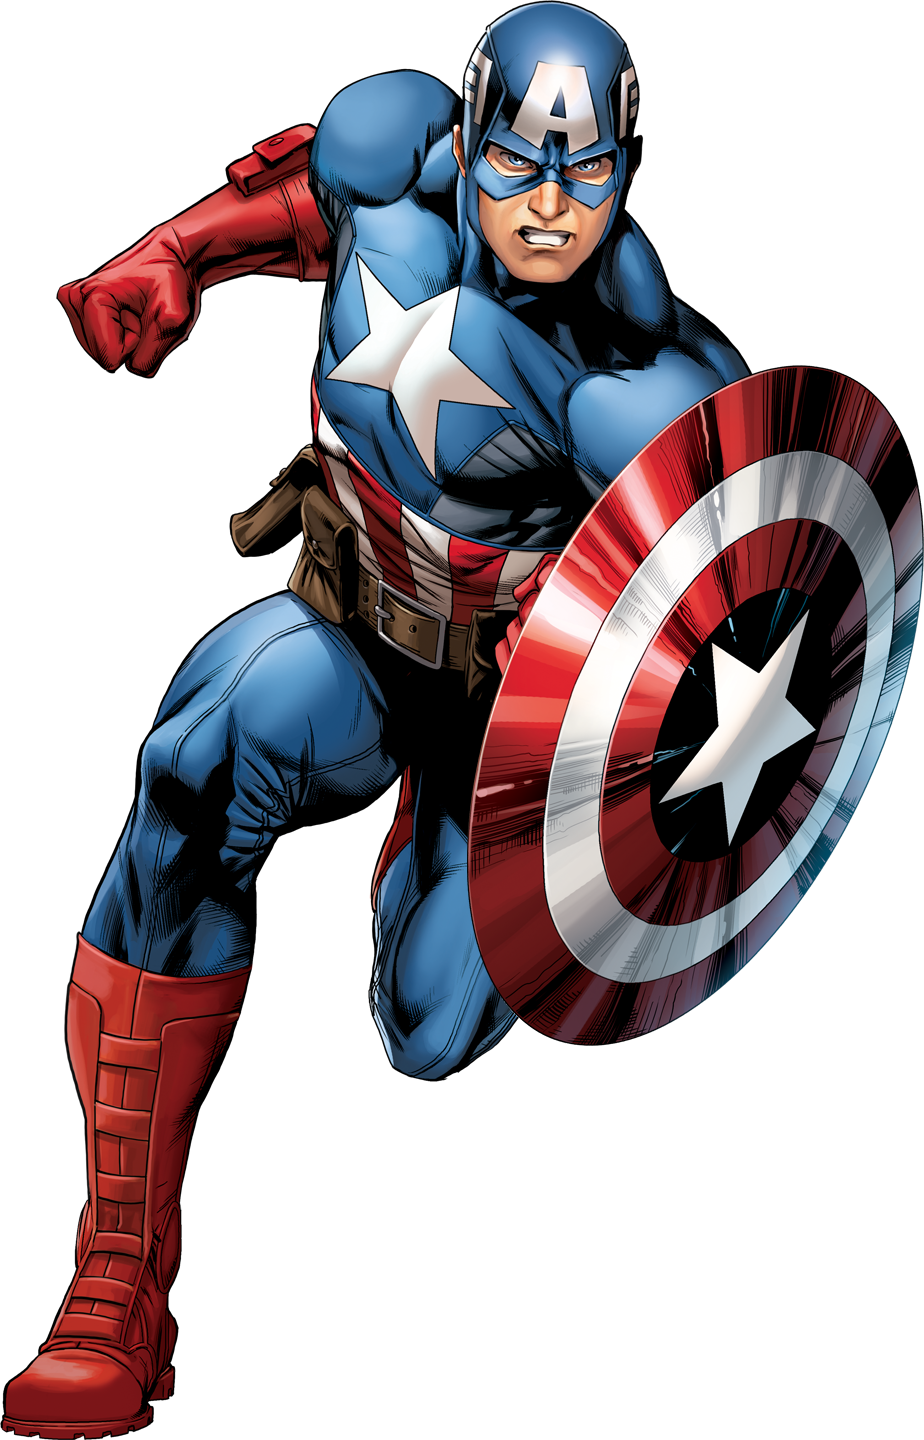 Image - Captain America 1.png | Marvelu0027s Avengers Assemble Wiki | FANDOM  powered by Wikia - Captain America PNG